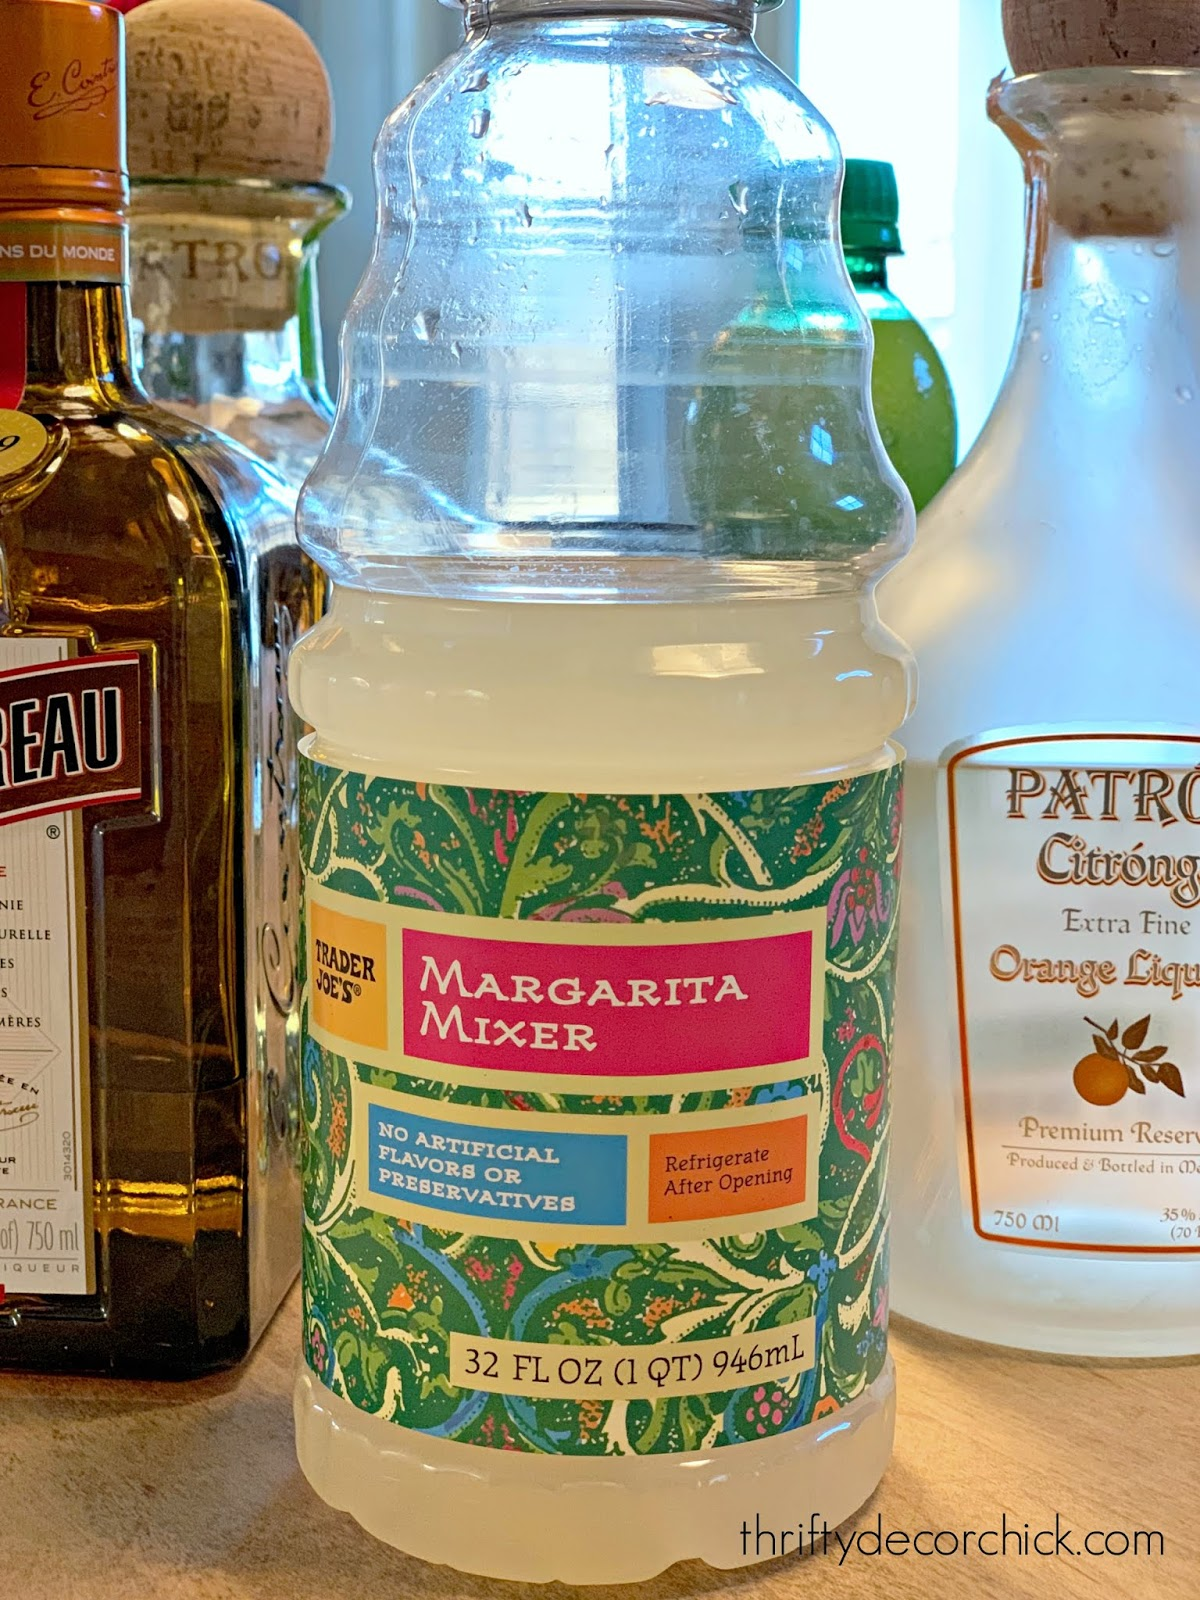 Trader Joe's margarita mix